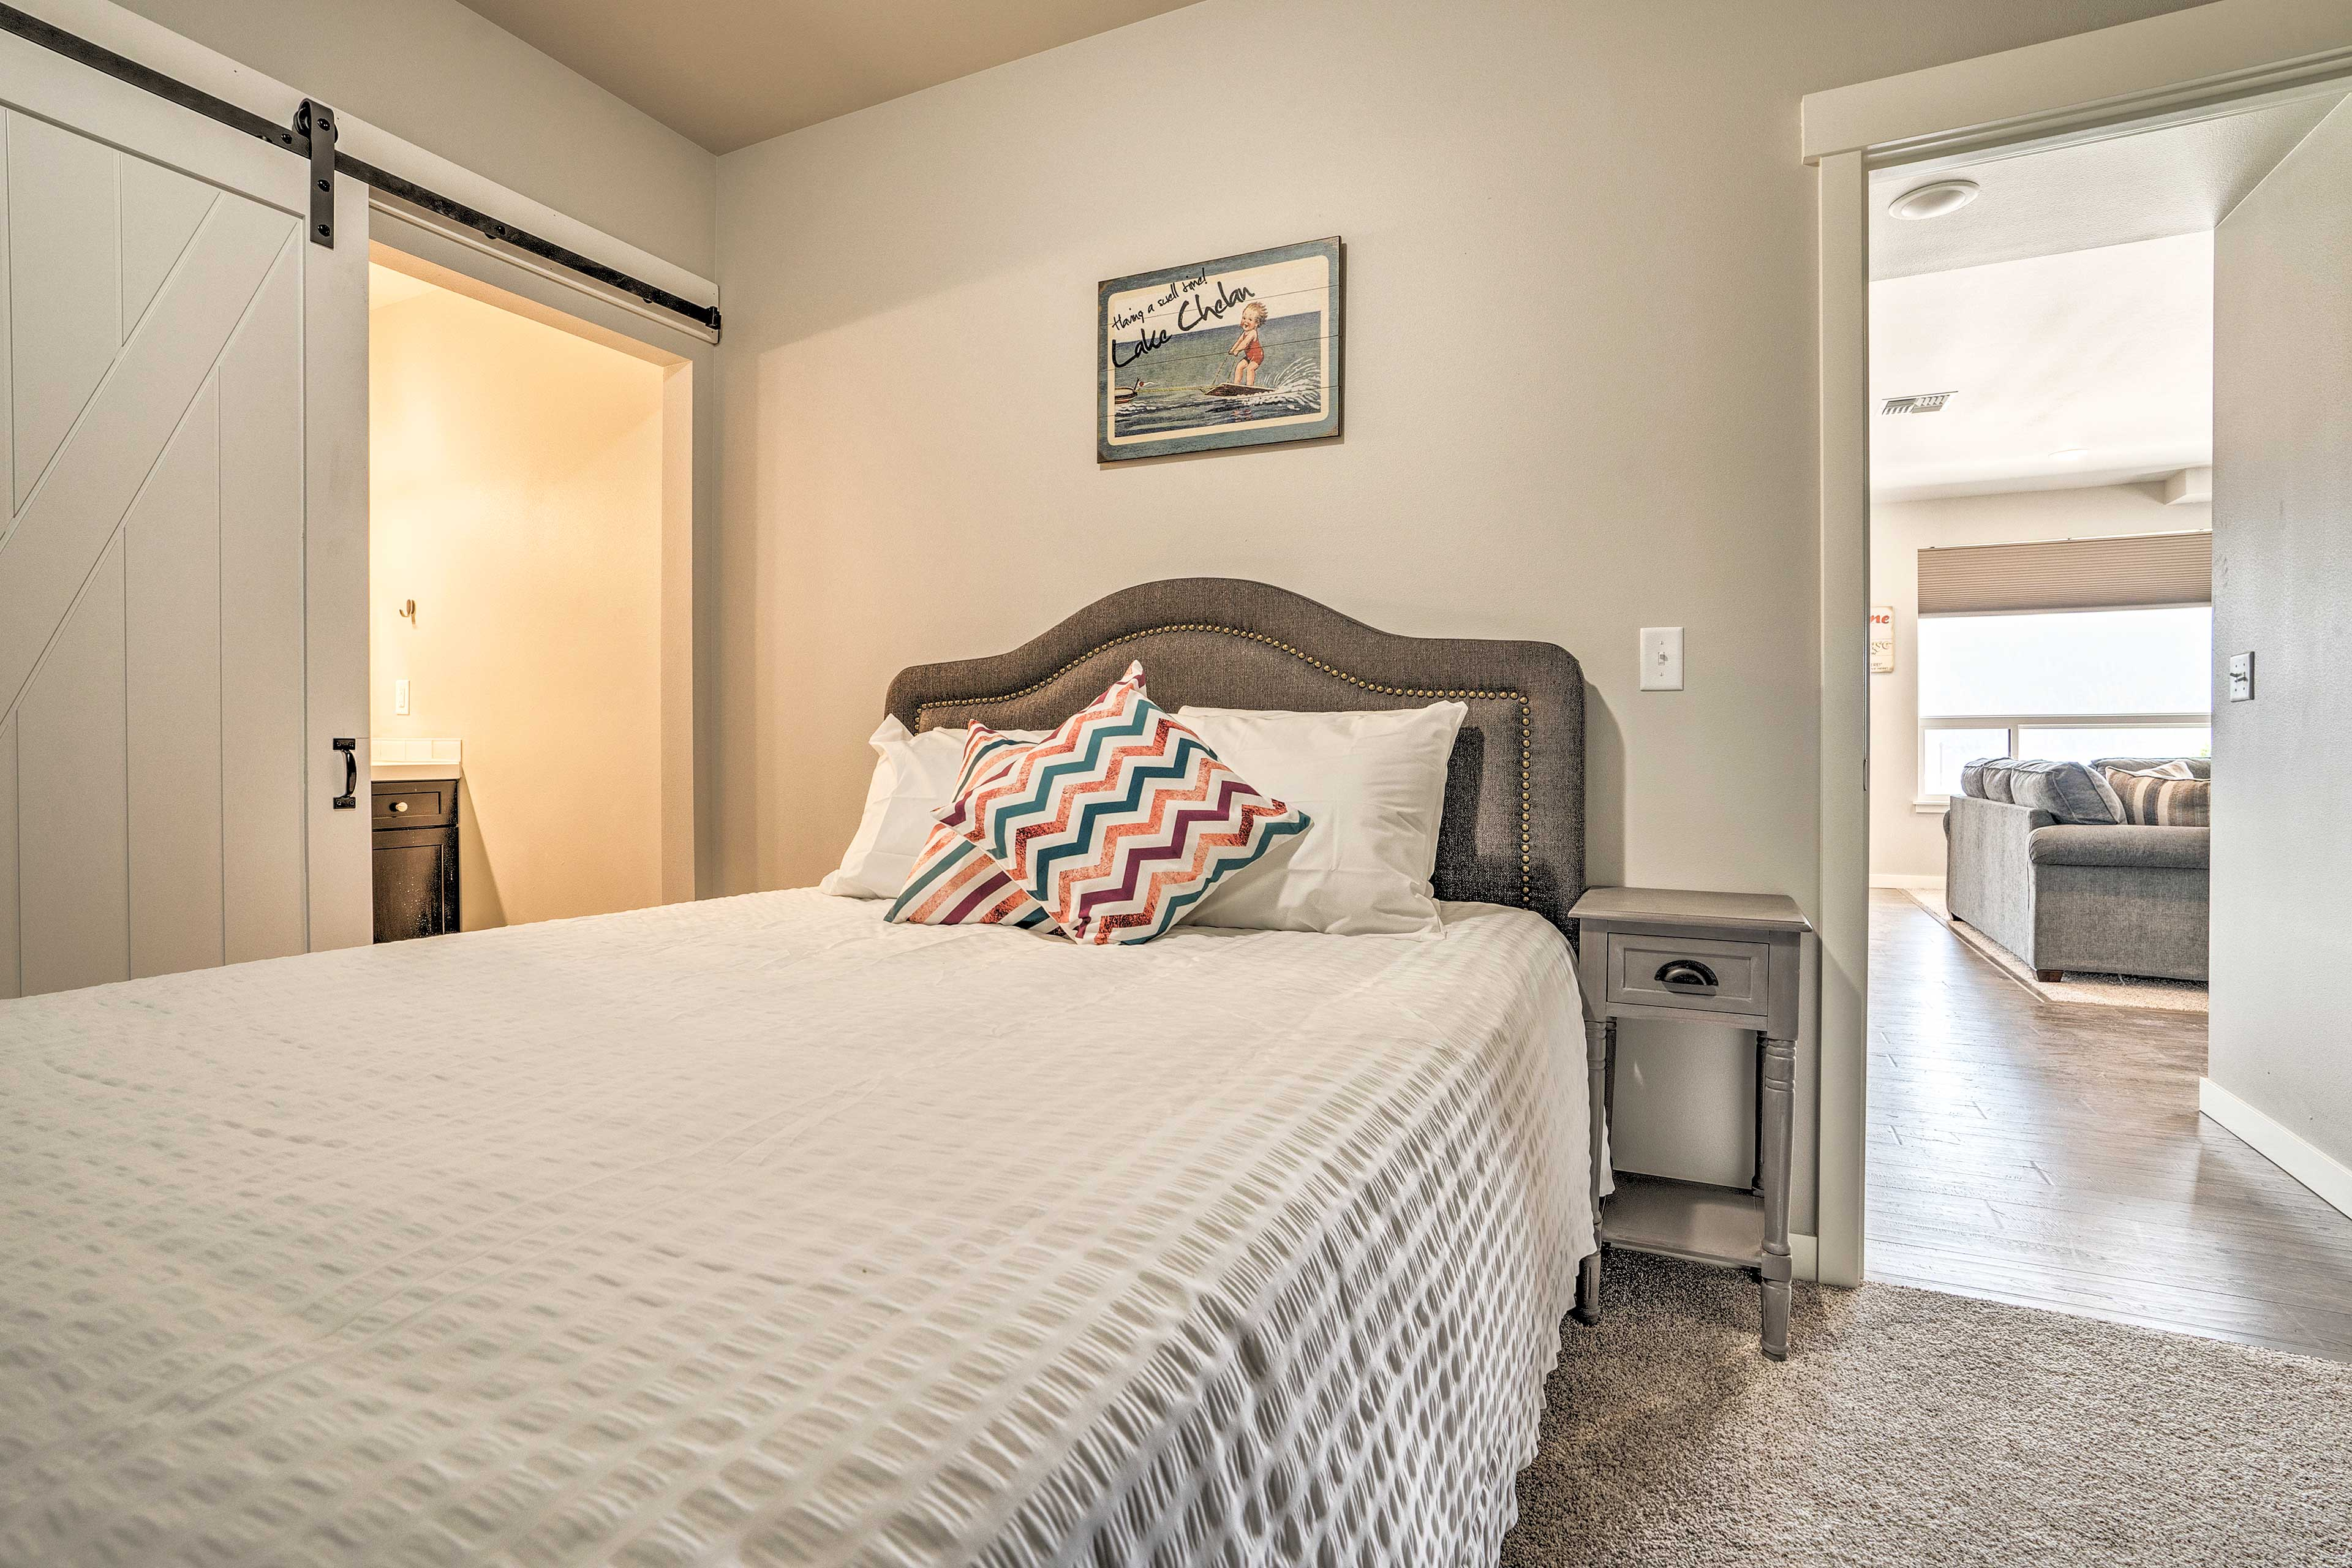 Couples will love sharing this room.